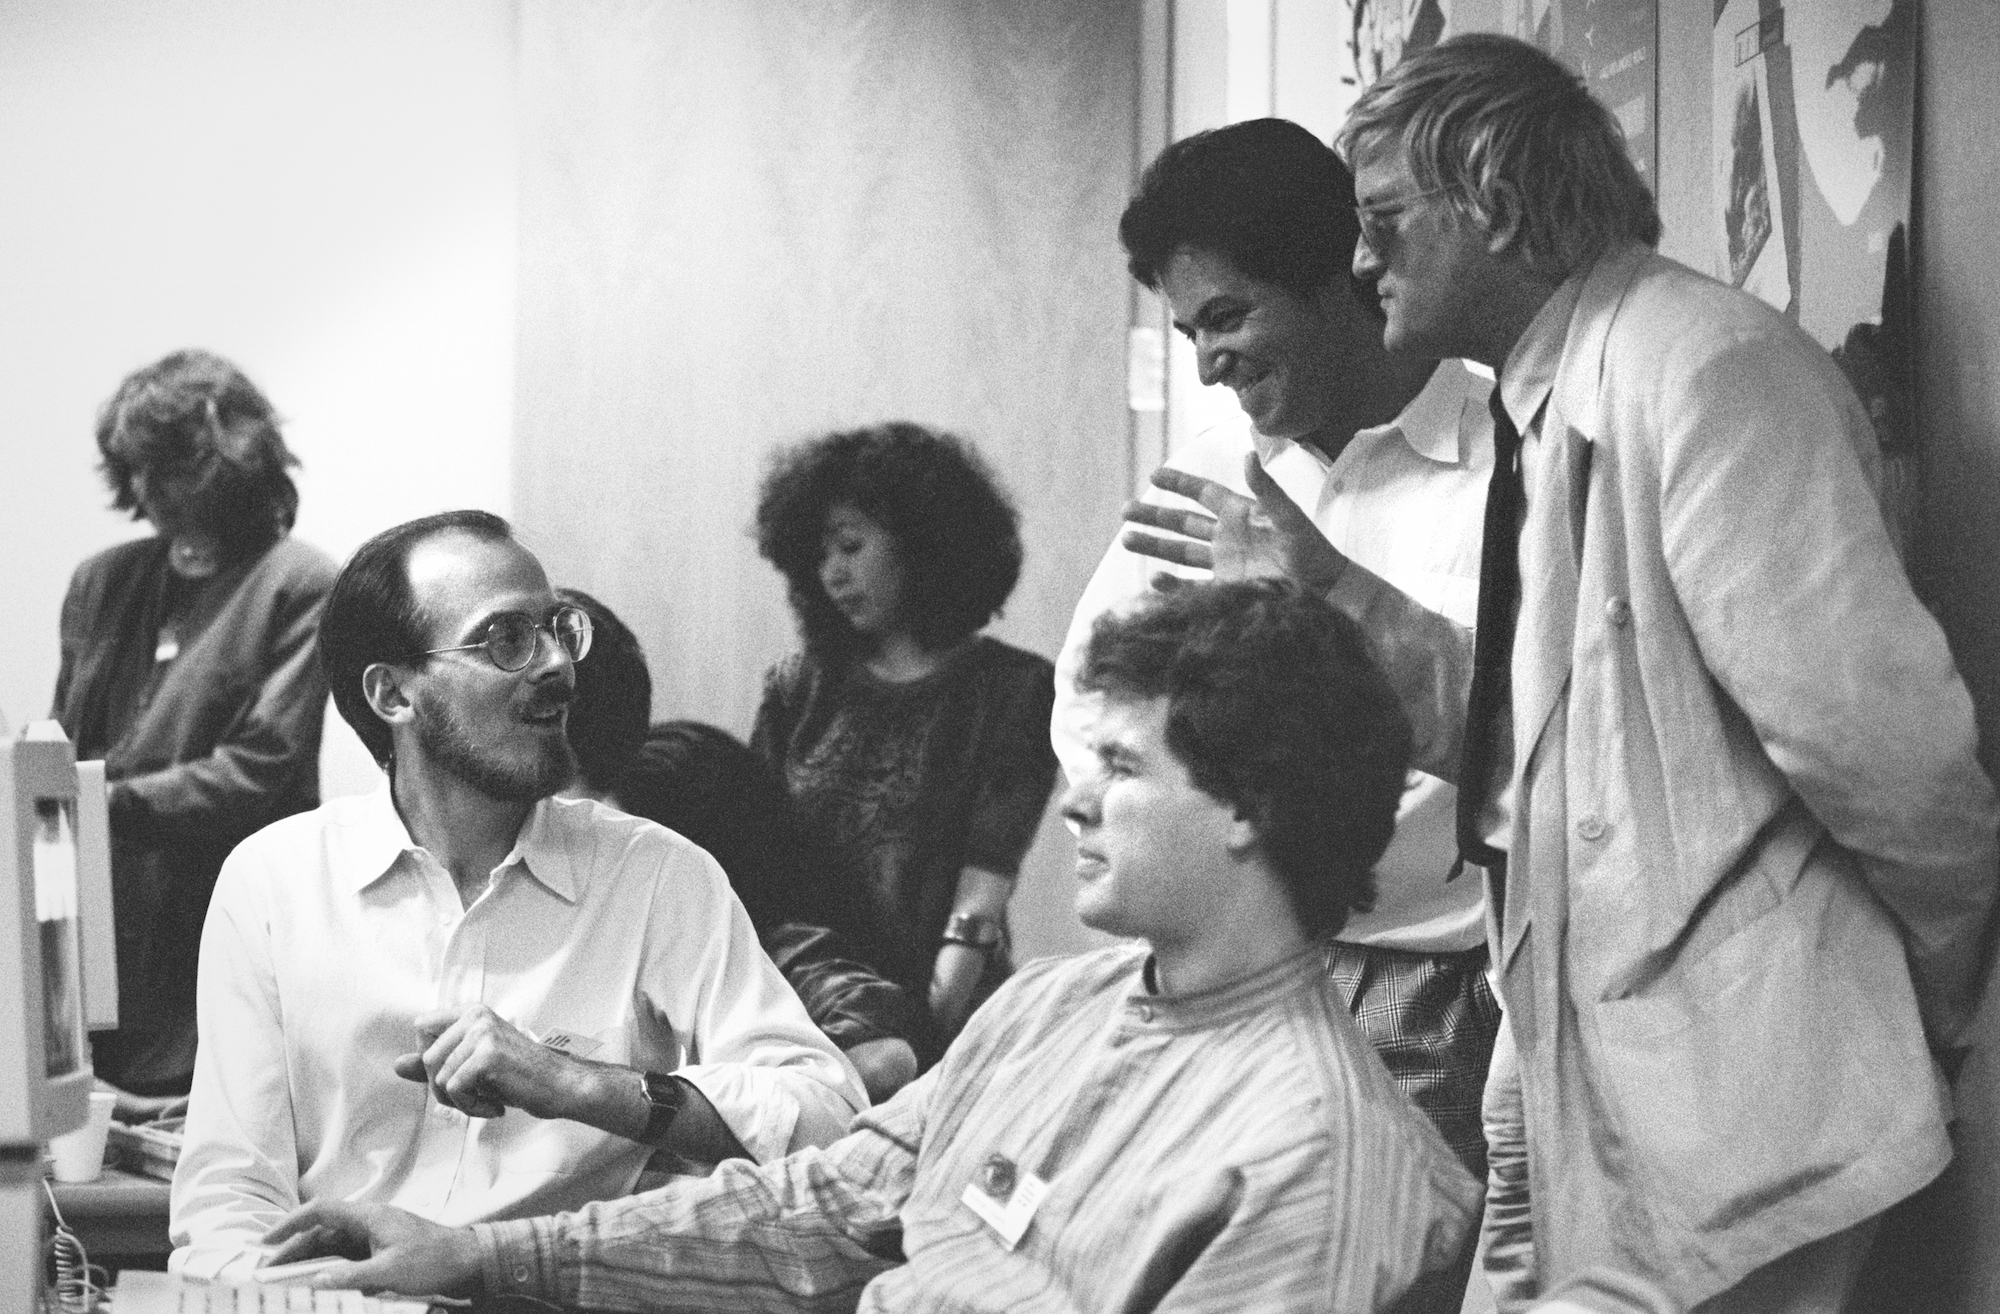 Adobe Creative Director Russell Brown (left, seated) with artists Nicholas Callaway (center, seated) and David Hockney (right, standing) and other colleagues at Adobe's Art Directors Invitational, 1990